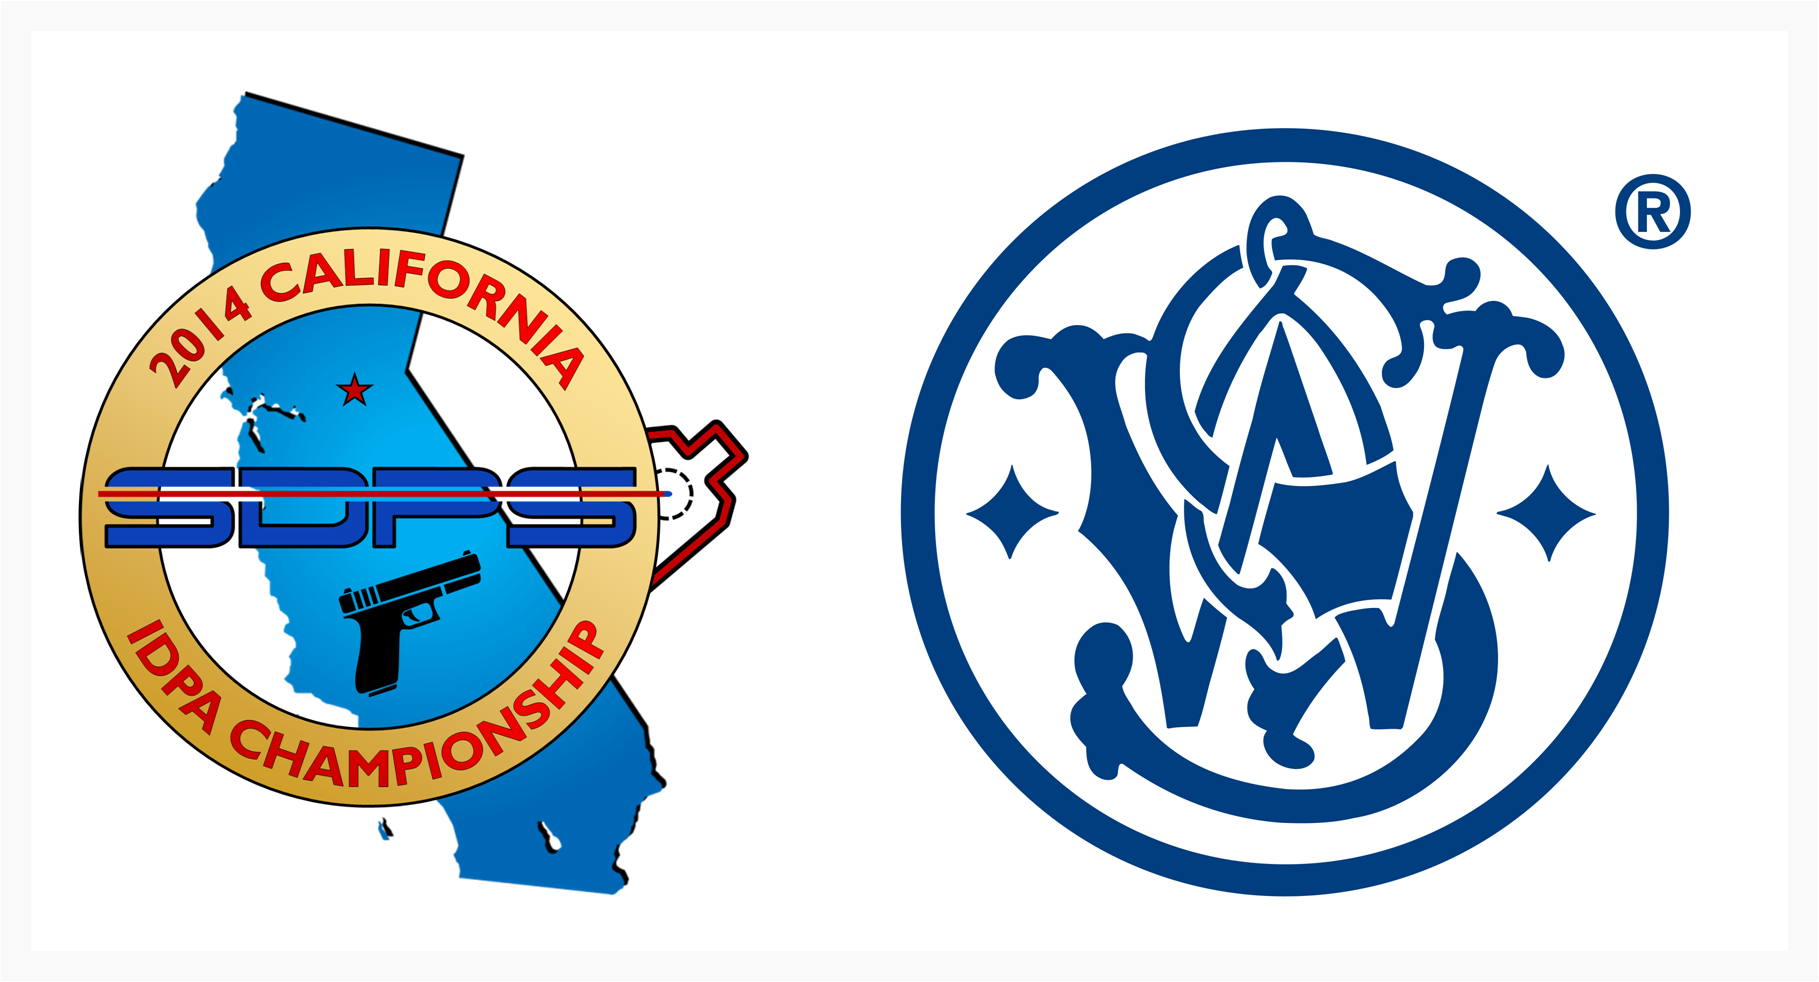 Smith & wesson logo png. And free transparent logos